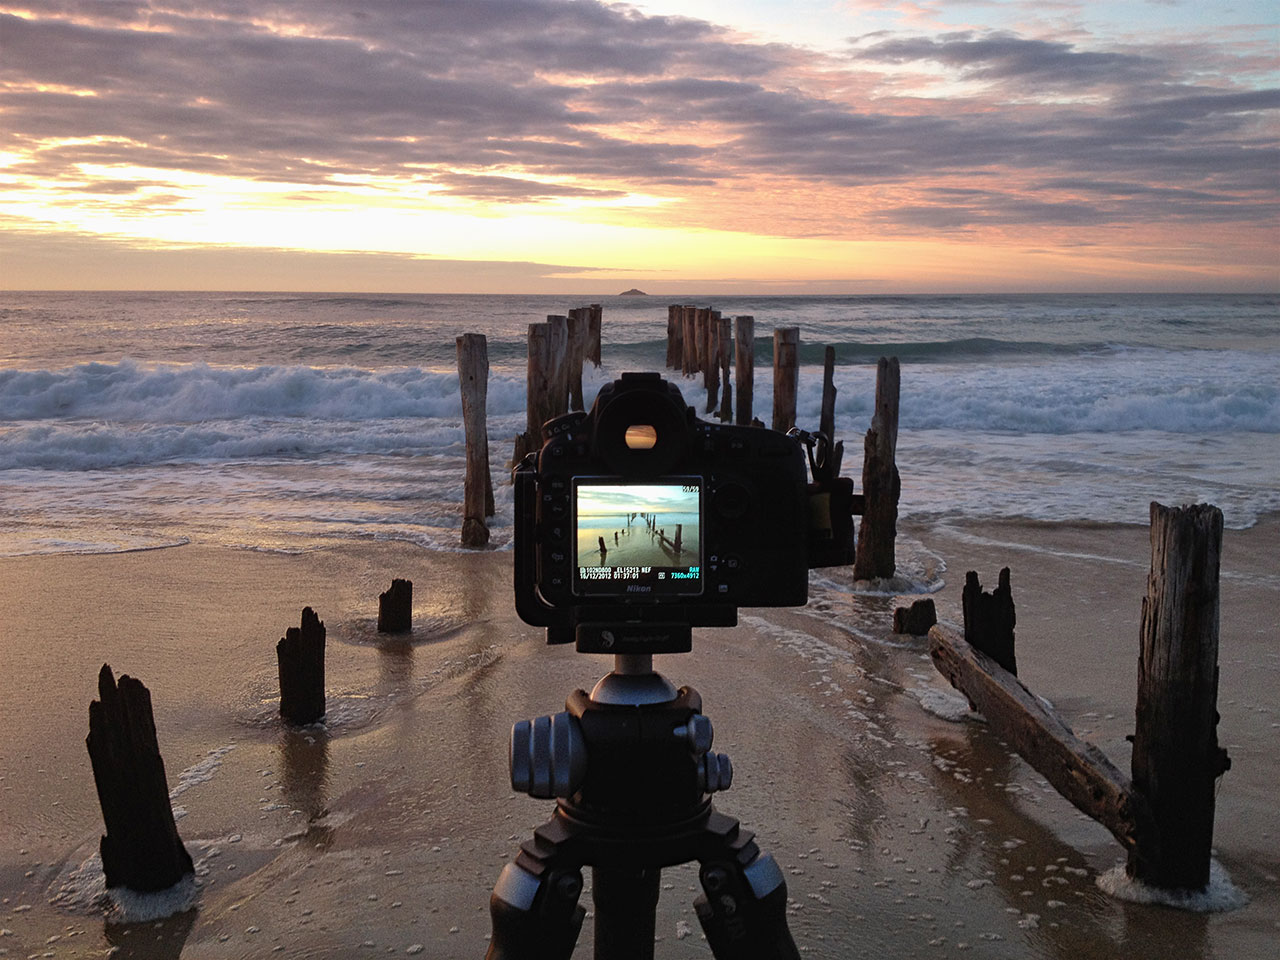 12-12_NZ_Elia-on-the-beach-sunrise-Camera-Tripod-View-1280